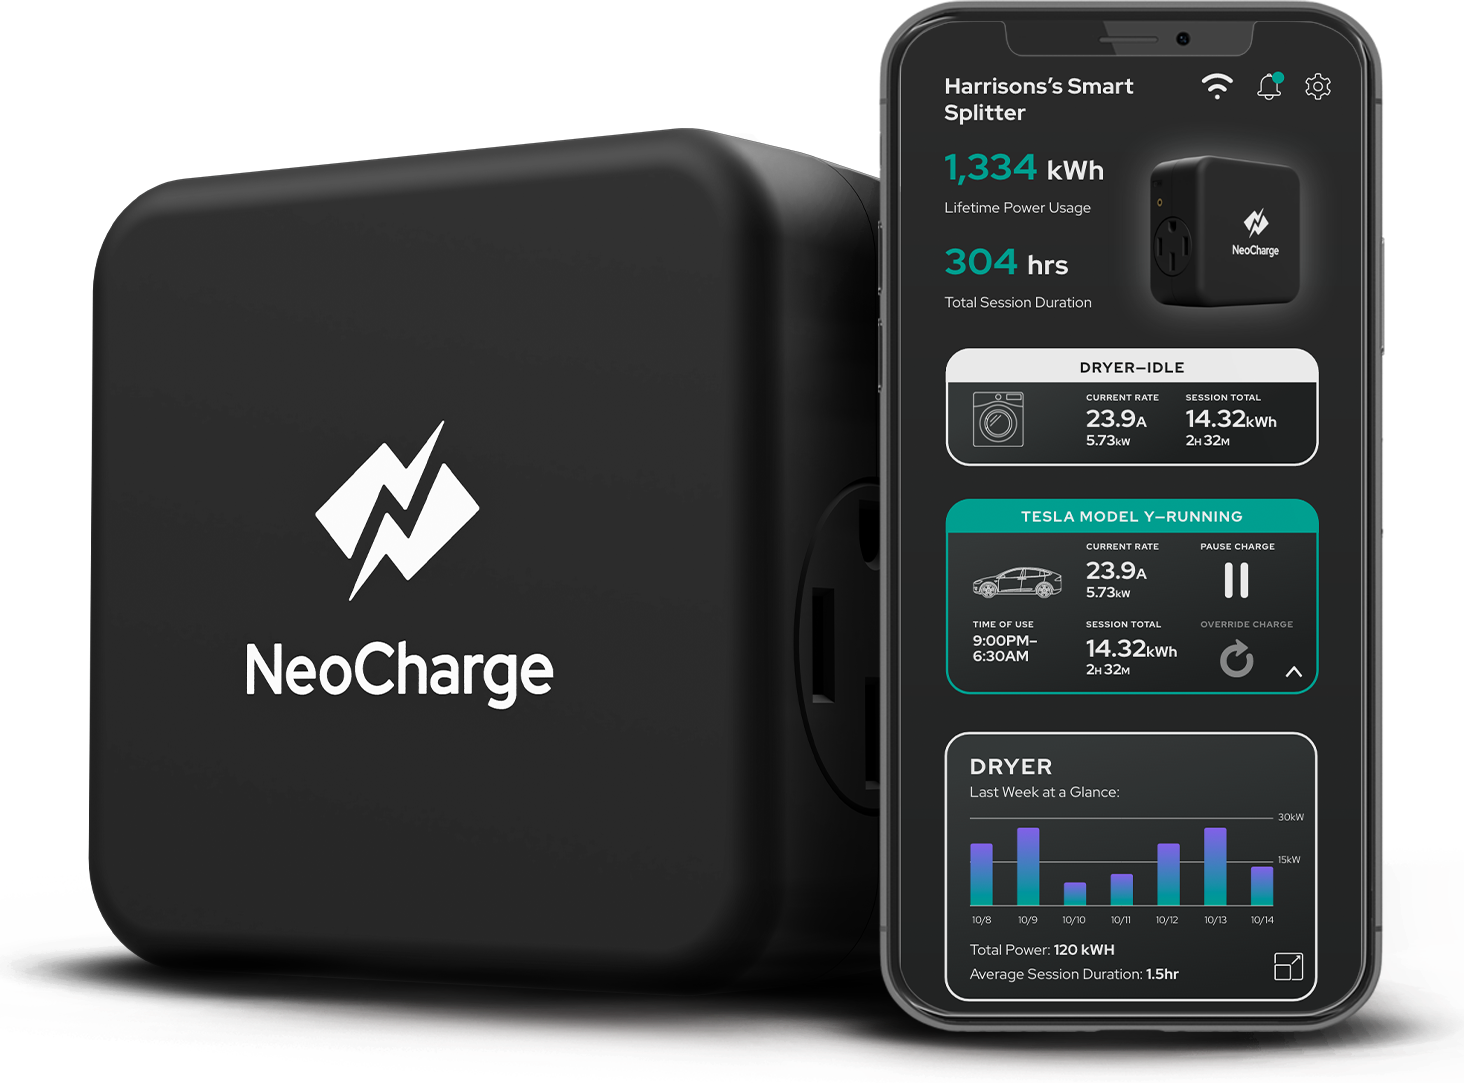 A NeoCharge Smart Splitter Next to the Smart Charging App.